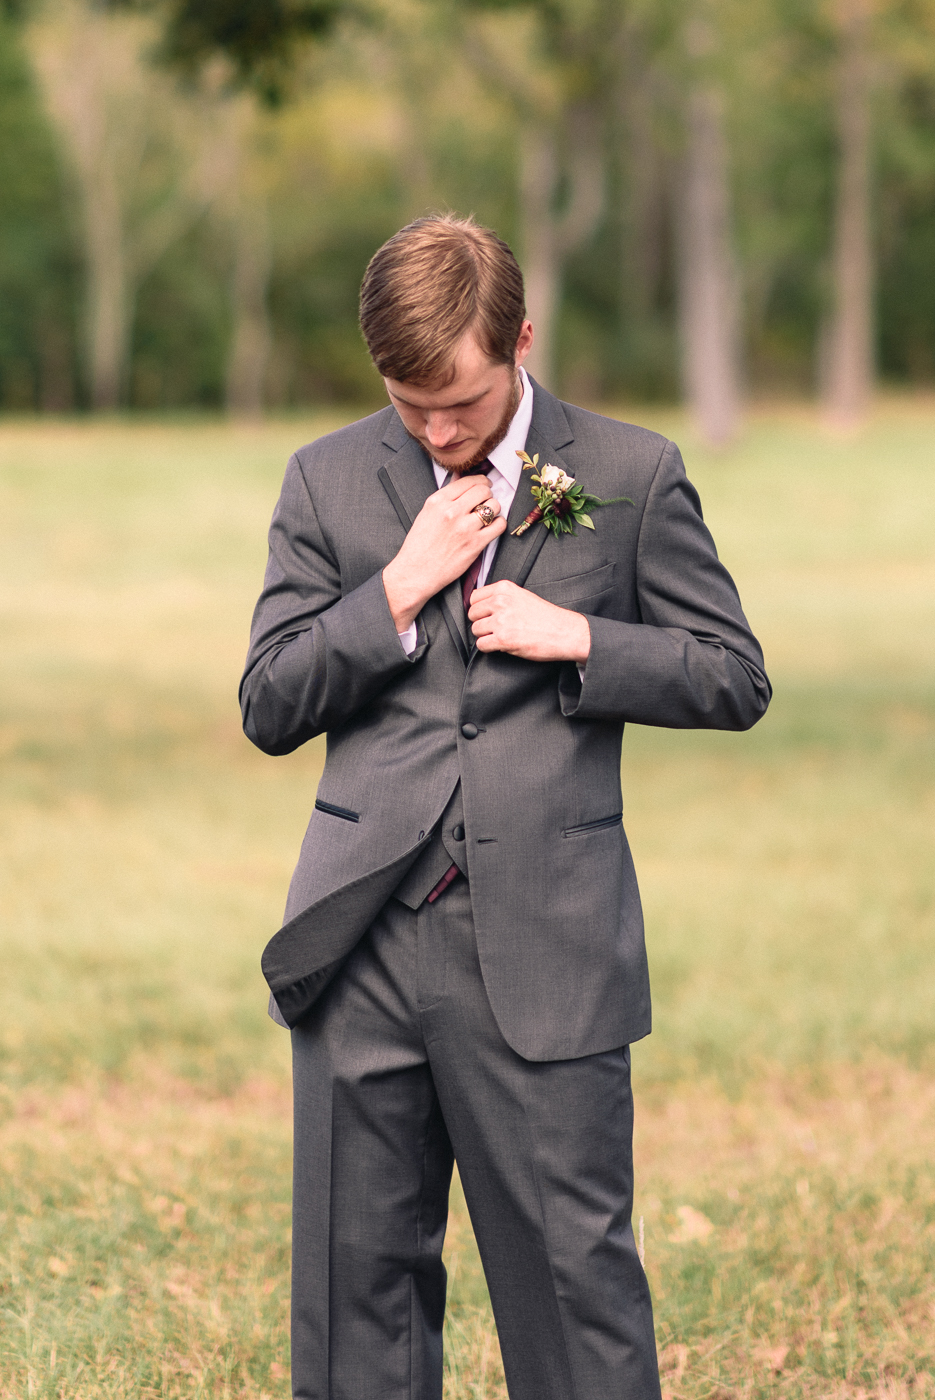 Groom Portrait Maroon tie Texas A&M Ring Texas Aggie Ring Boutonniere wing movement beard